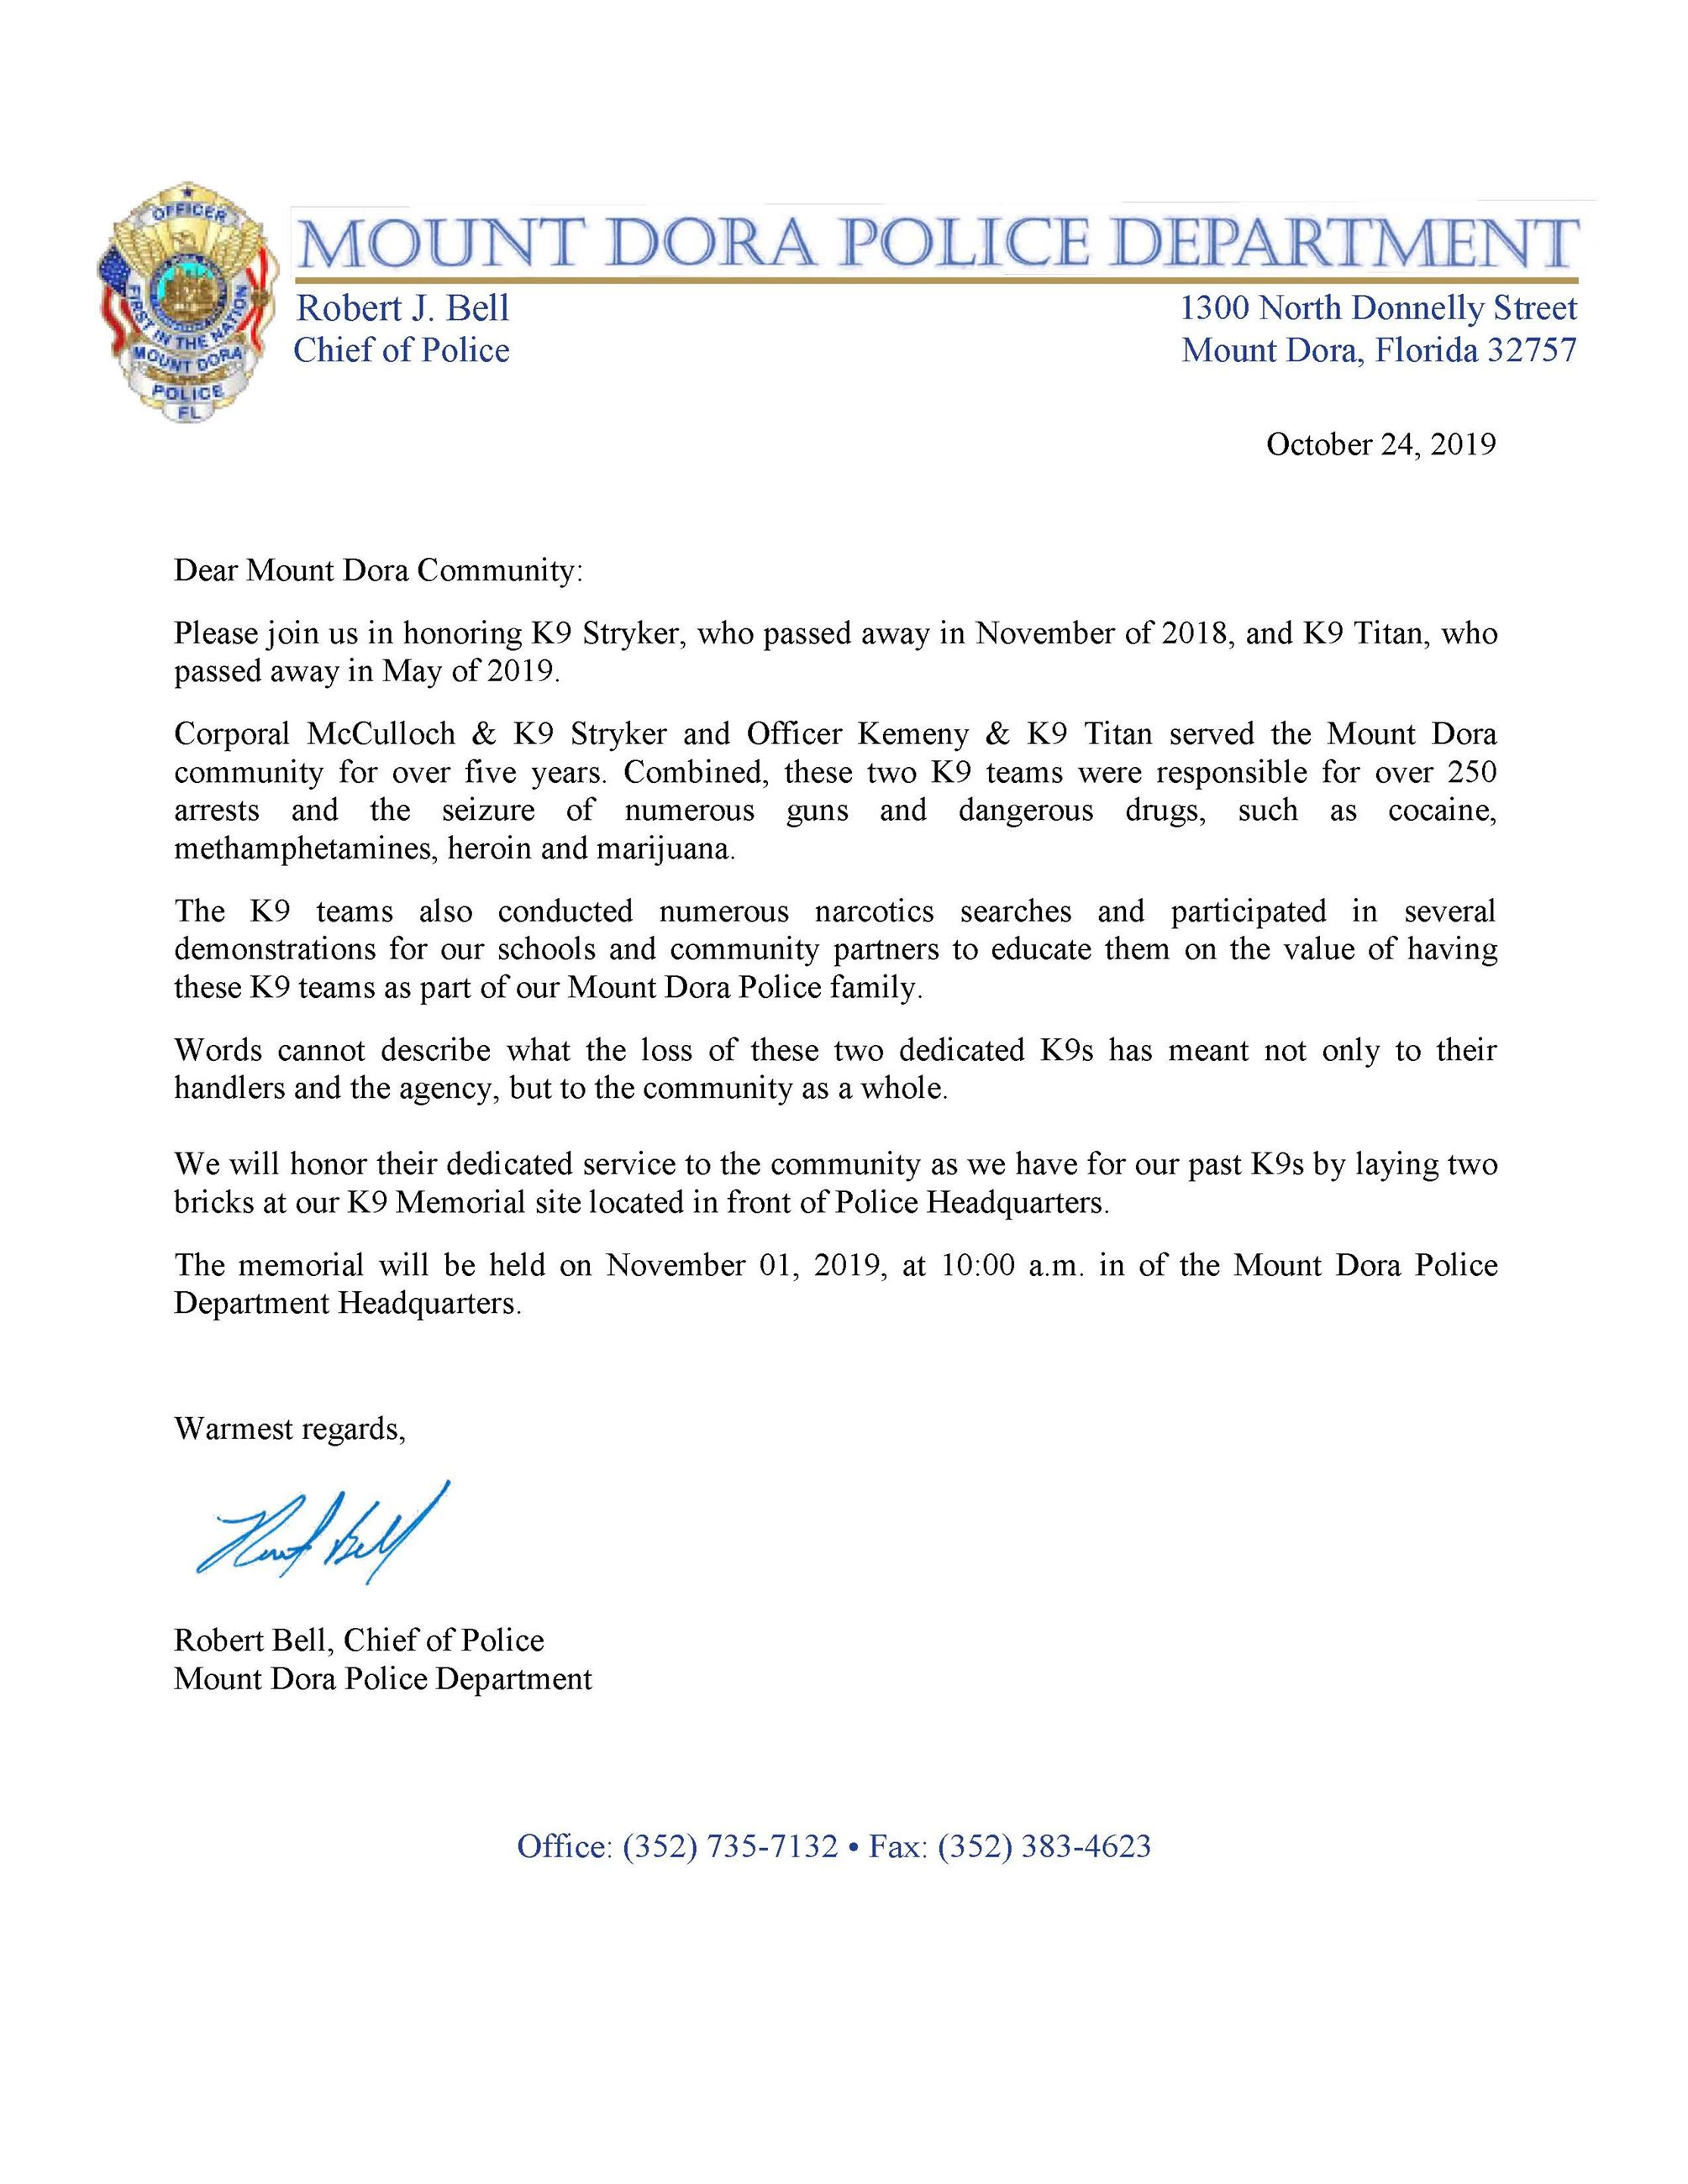 K9 memorial letter to citizens